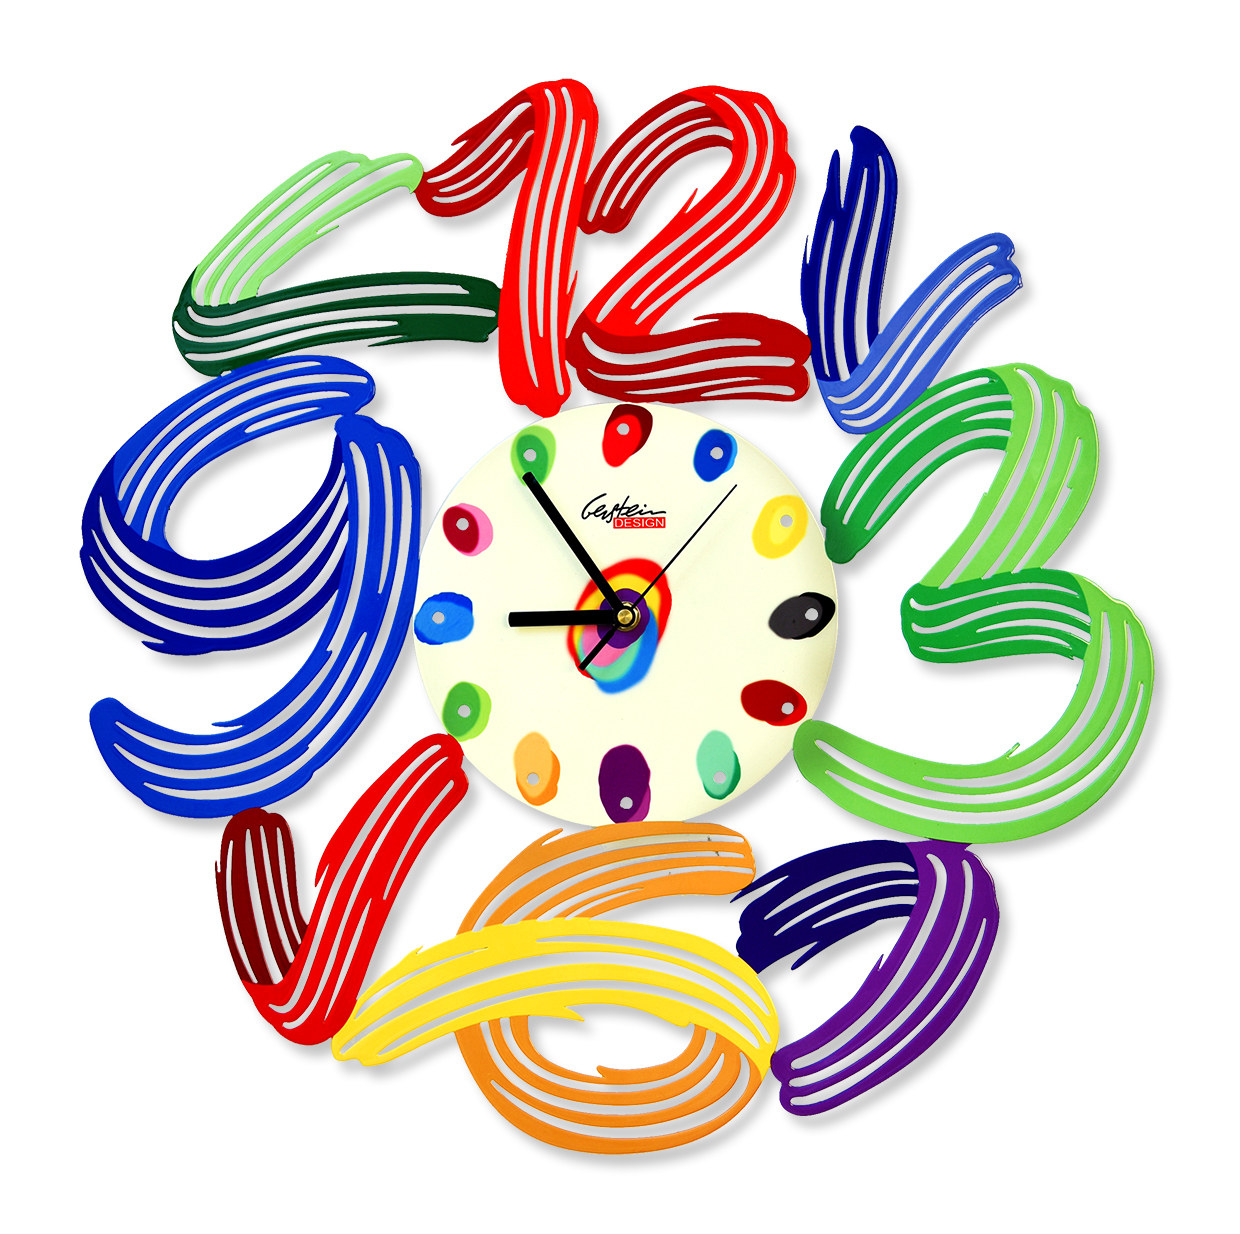 art-time-clock by david gerstein